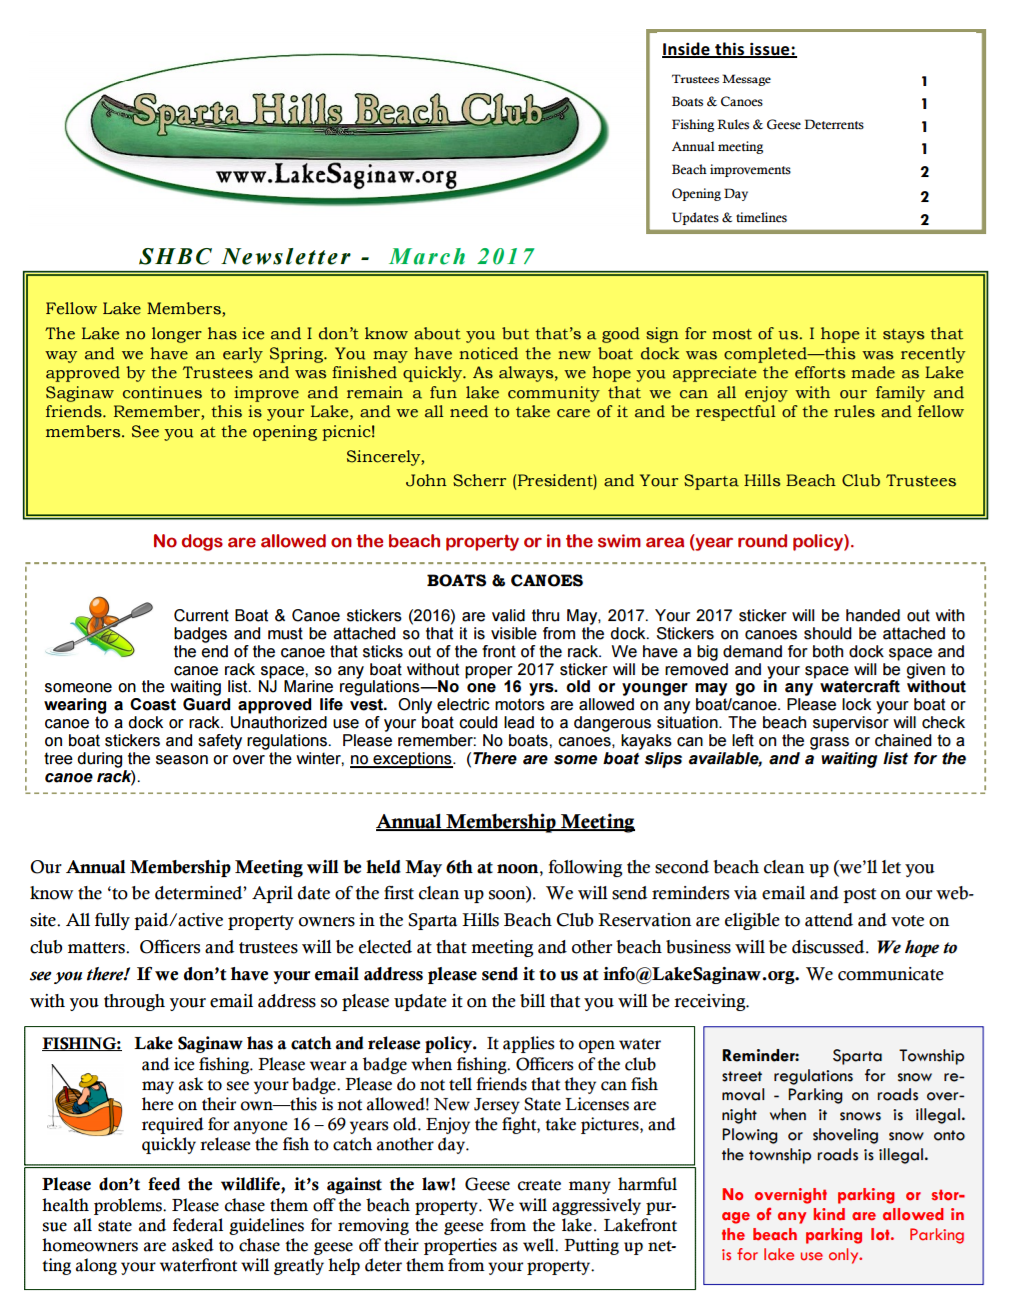 shbc-march-2017-newsletter1